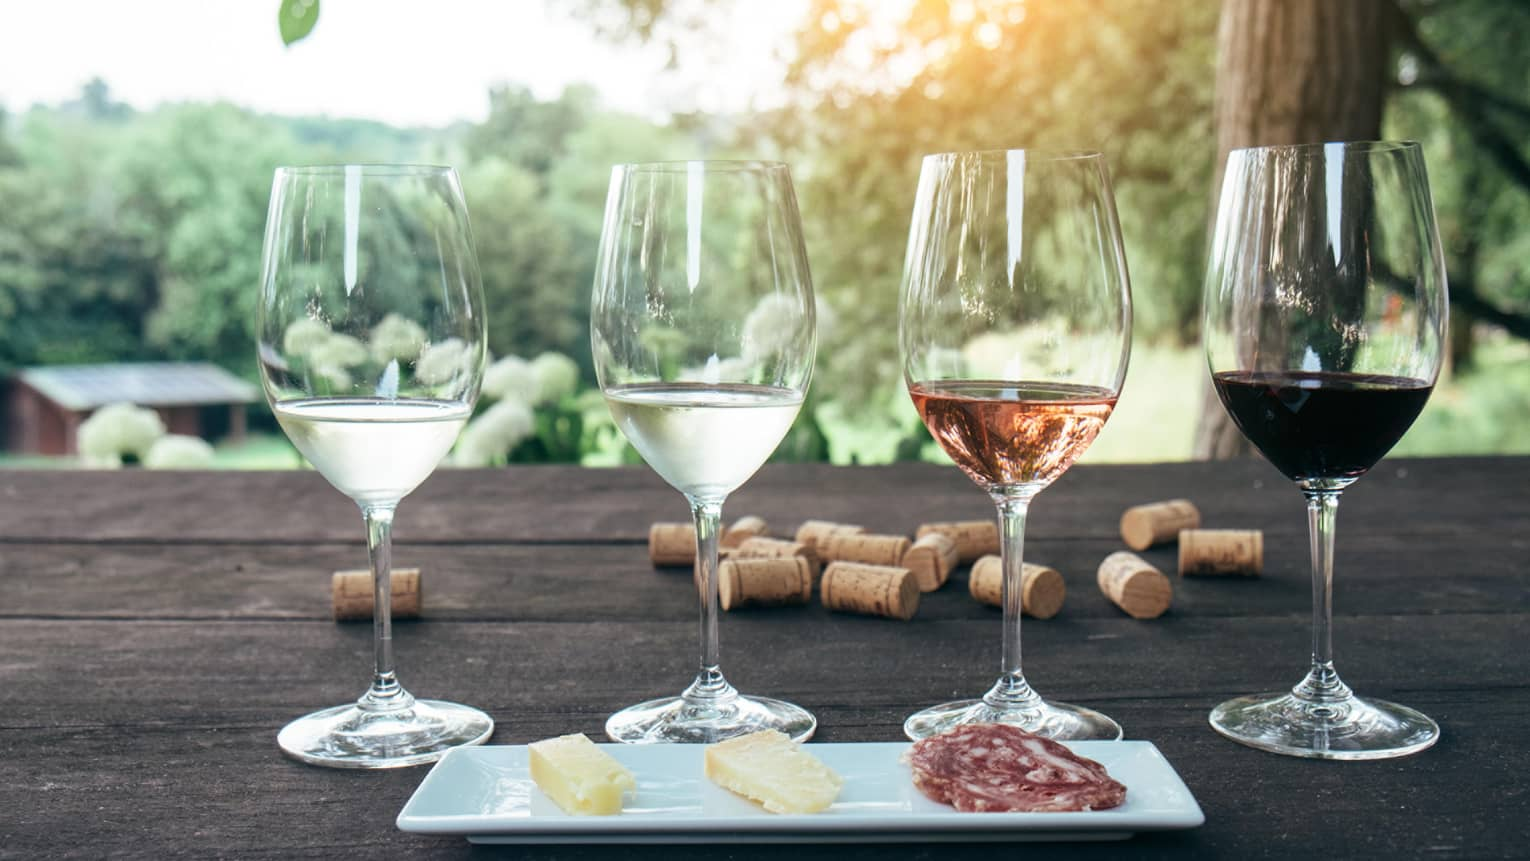 Tasting glasses of white, rose and red wine in row behind cheese platter on patio table, corks